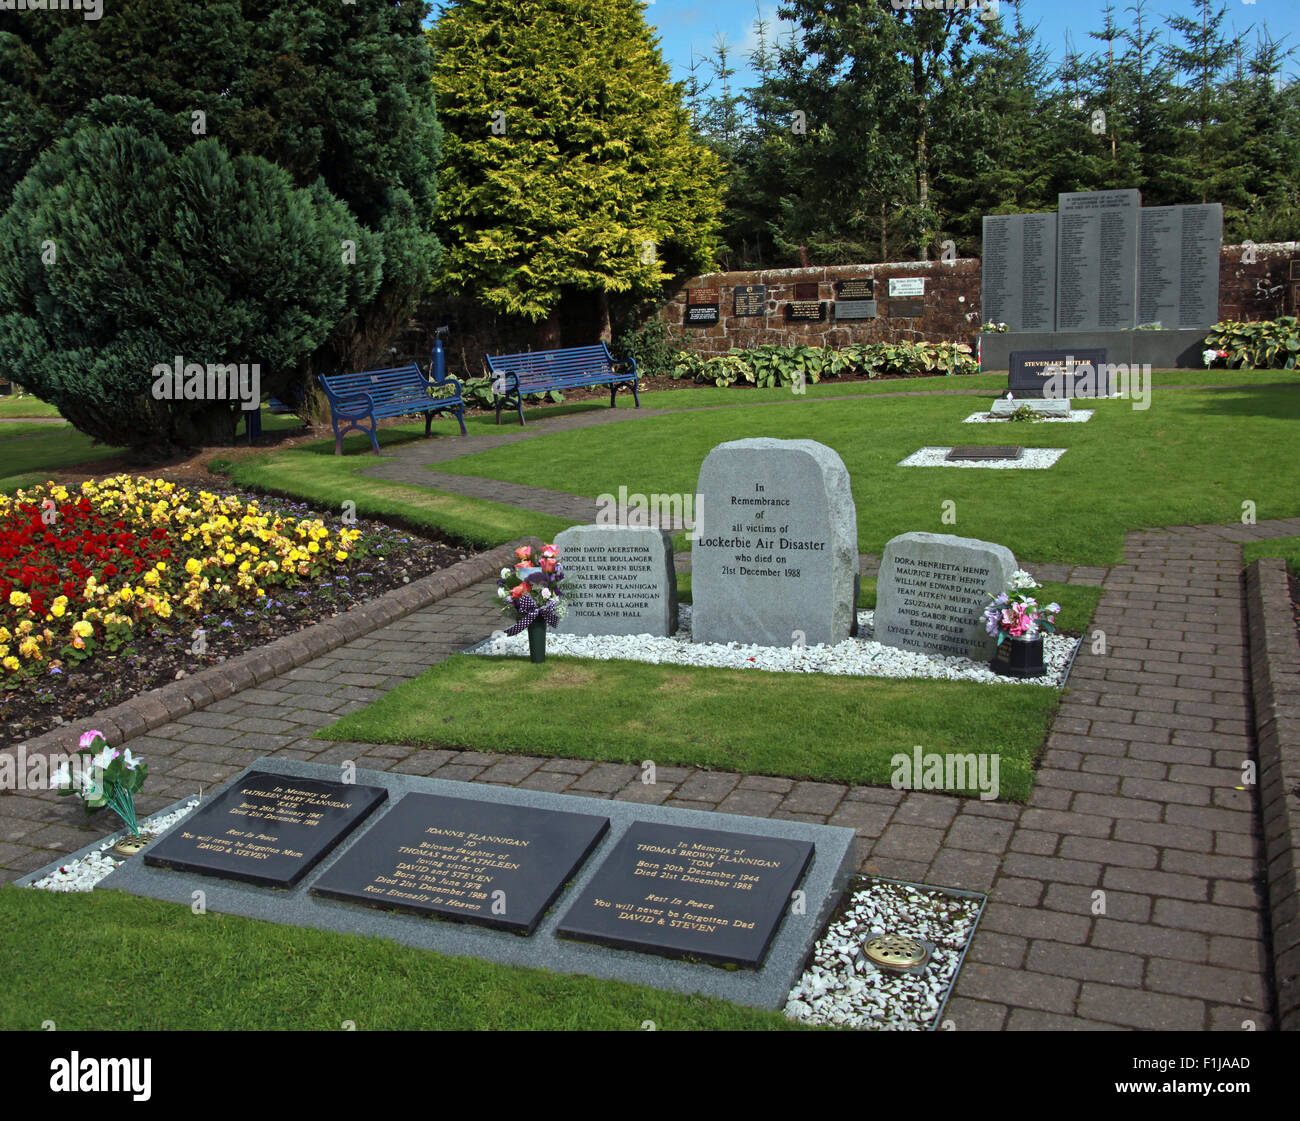 Lodge,Visitors,Centre,DLVC,Trust,Lockerbie,Memorial,Scotland,Victims,Pan,Am,PanAm,flight,103,bomb,bombing,terrorist,December,1988,attack,crash,dead,site,21/12/1988,270,victims,Scottish,Town,conspiracy,blast,Tundergarth,Room,garden,of,Dryfesdale,Cemetery,news,Cultural,understanding,al me,New York,GoTonySmith,Lodge,Visitors,Centre,DLVC,Trust,Lockerbie,Memorial,Scotland,Victims,Pan,Am,PanAm,flight,103,bomb,bombing,terrorist,December,1988,attack,crash,dead,site,21/12/1988,270,victims,Scottish,Town,conspiracy,blast,Tundergarth,Room,garden,of,Dryfesdale,Cemetery,news,Cultural,understanding,remembering,innocent,transatlantic,Frankfurt,Detroit,Libyan,Libya,Colonel Muammar Gaddafi,civil,case,compensation,terrorism,PA103,30,30years,years,Syracuse,University,SU,family,collections,Story,Archive,Archives,40,35,Timeline,saga,disaster,air,Scholars,program,programs,remembrance,Clipper Maid of the Seas,N739PA,Boeing,727,plane,aircraft,Scotland,UK,United Kingdom,GB,Great Britain,resting,place,Buy Pictures of,Buy Images Of,New York,al megrahi,30 Years